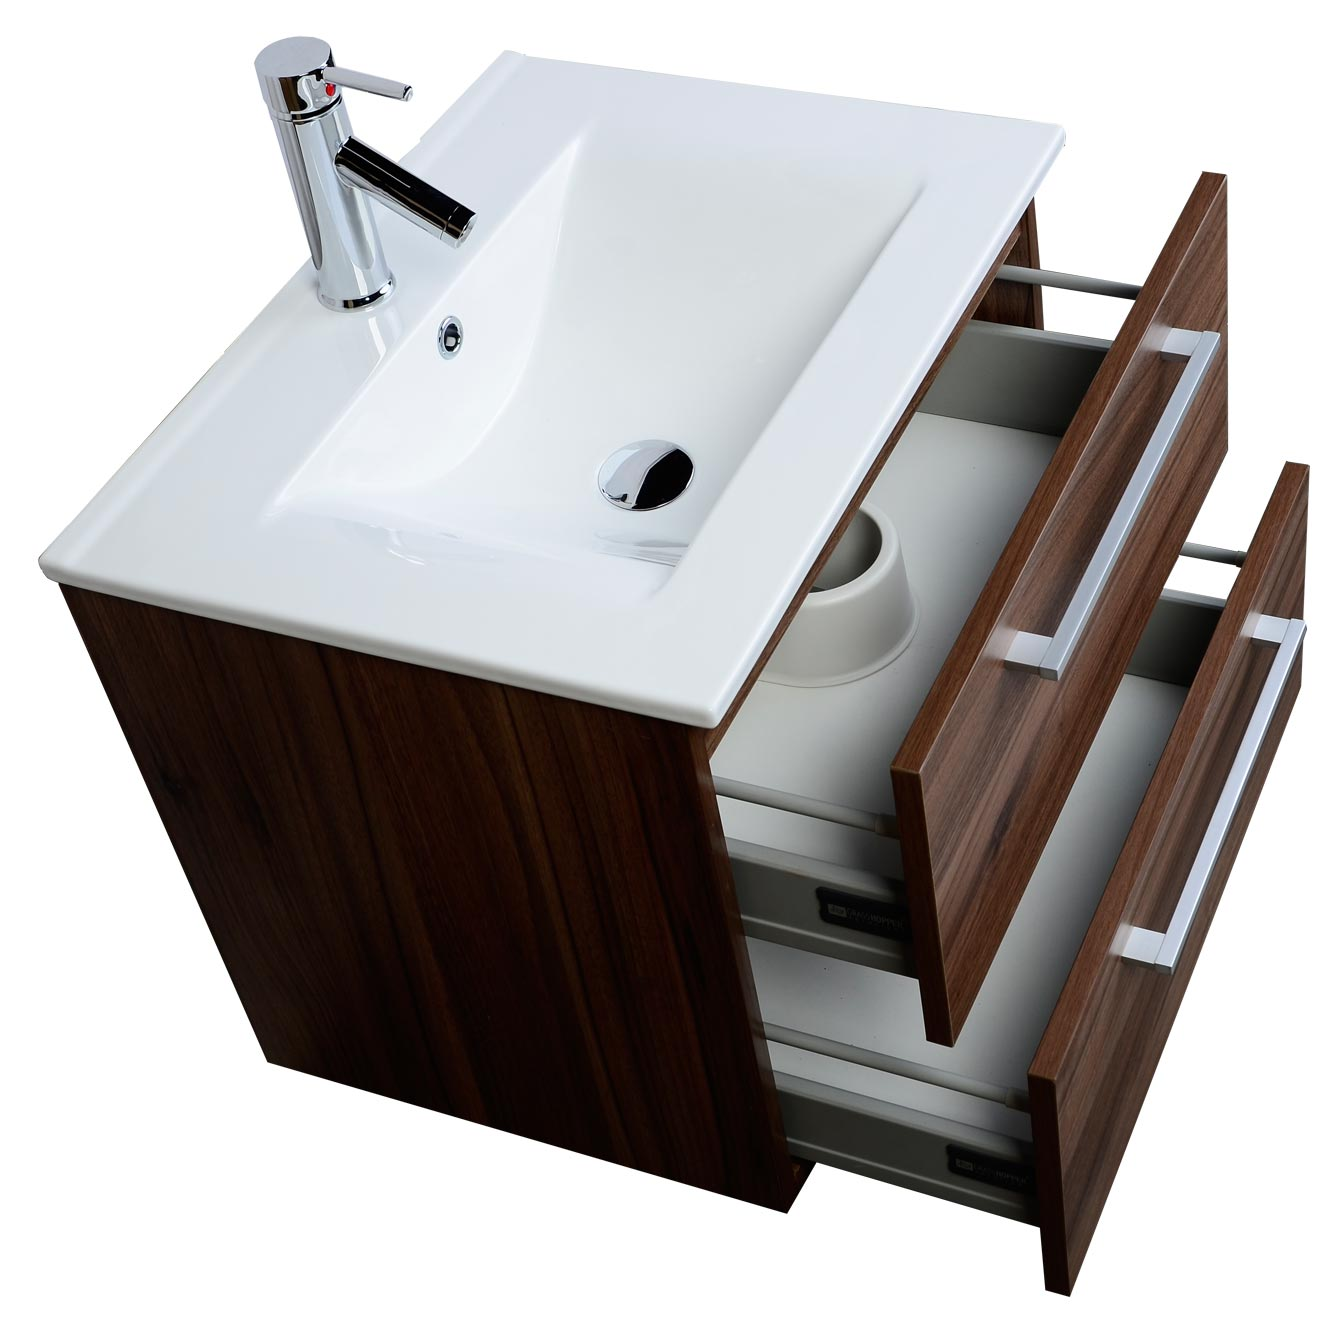 24 model bathroom vanities 24 inches wide for Bathroom 24 inch vanity